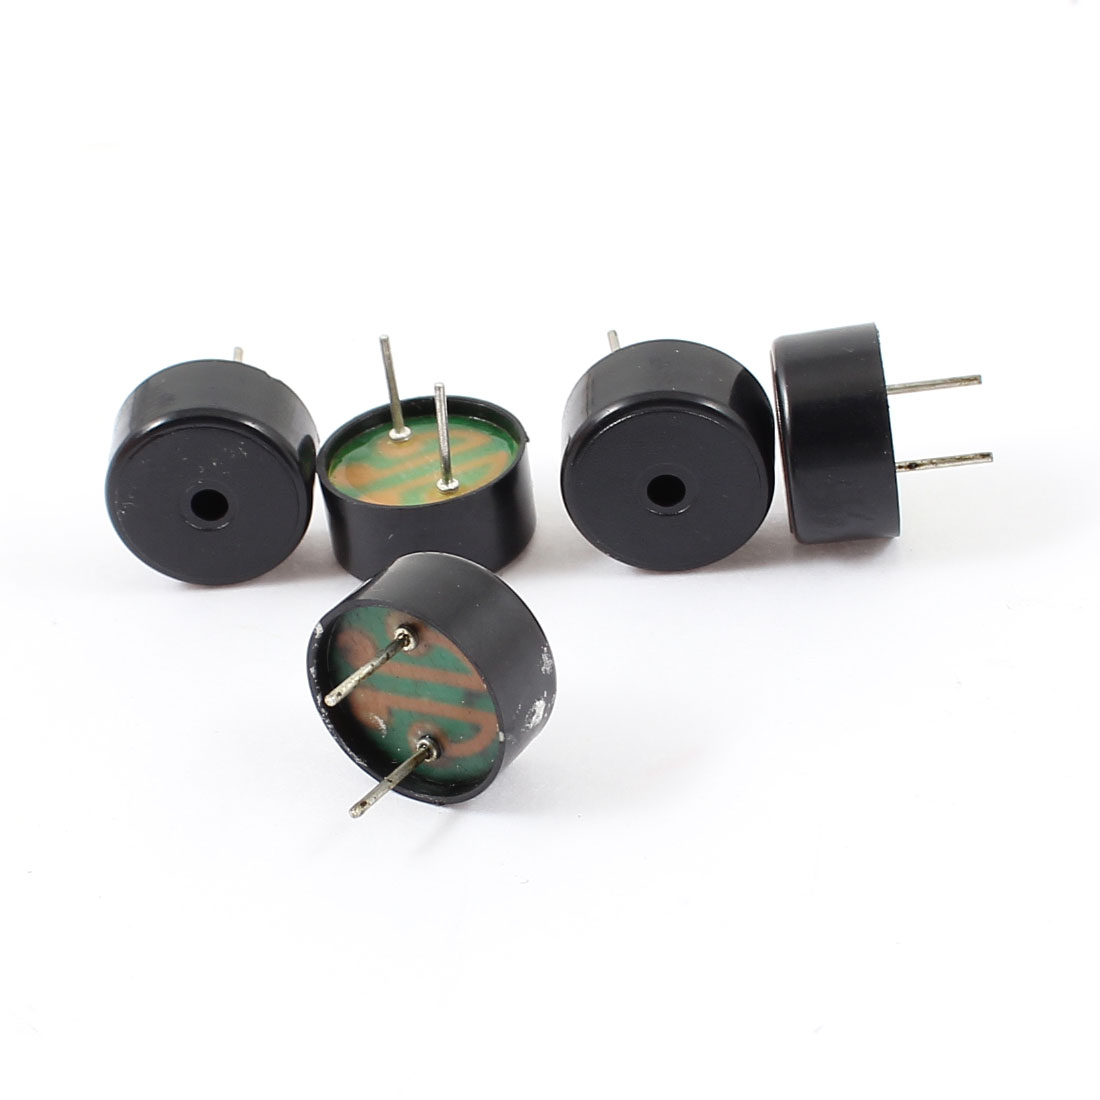 5pcs DC 1-30V 2mA 2 Terminal Cylinder Industrial Electronic Electromagnetic Continuous Sound Passive Buzzer Black 14x7mm